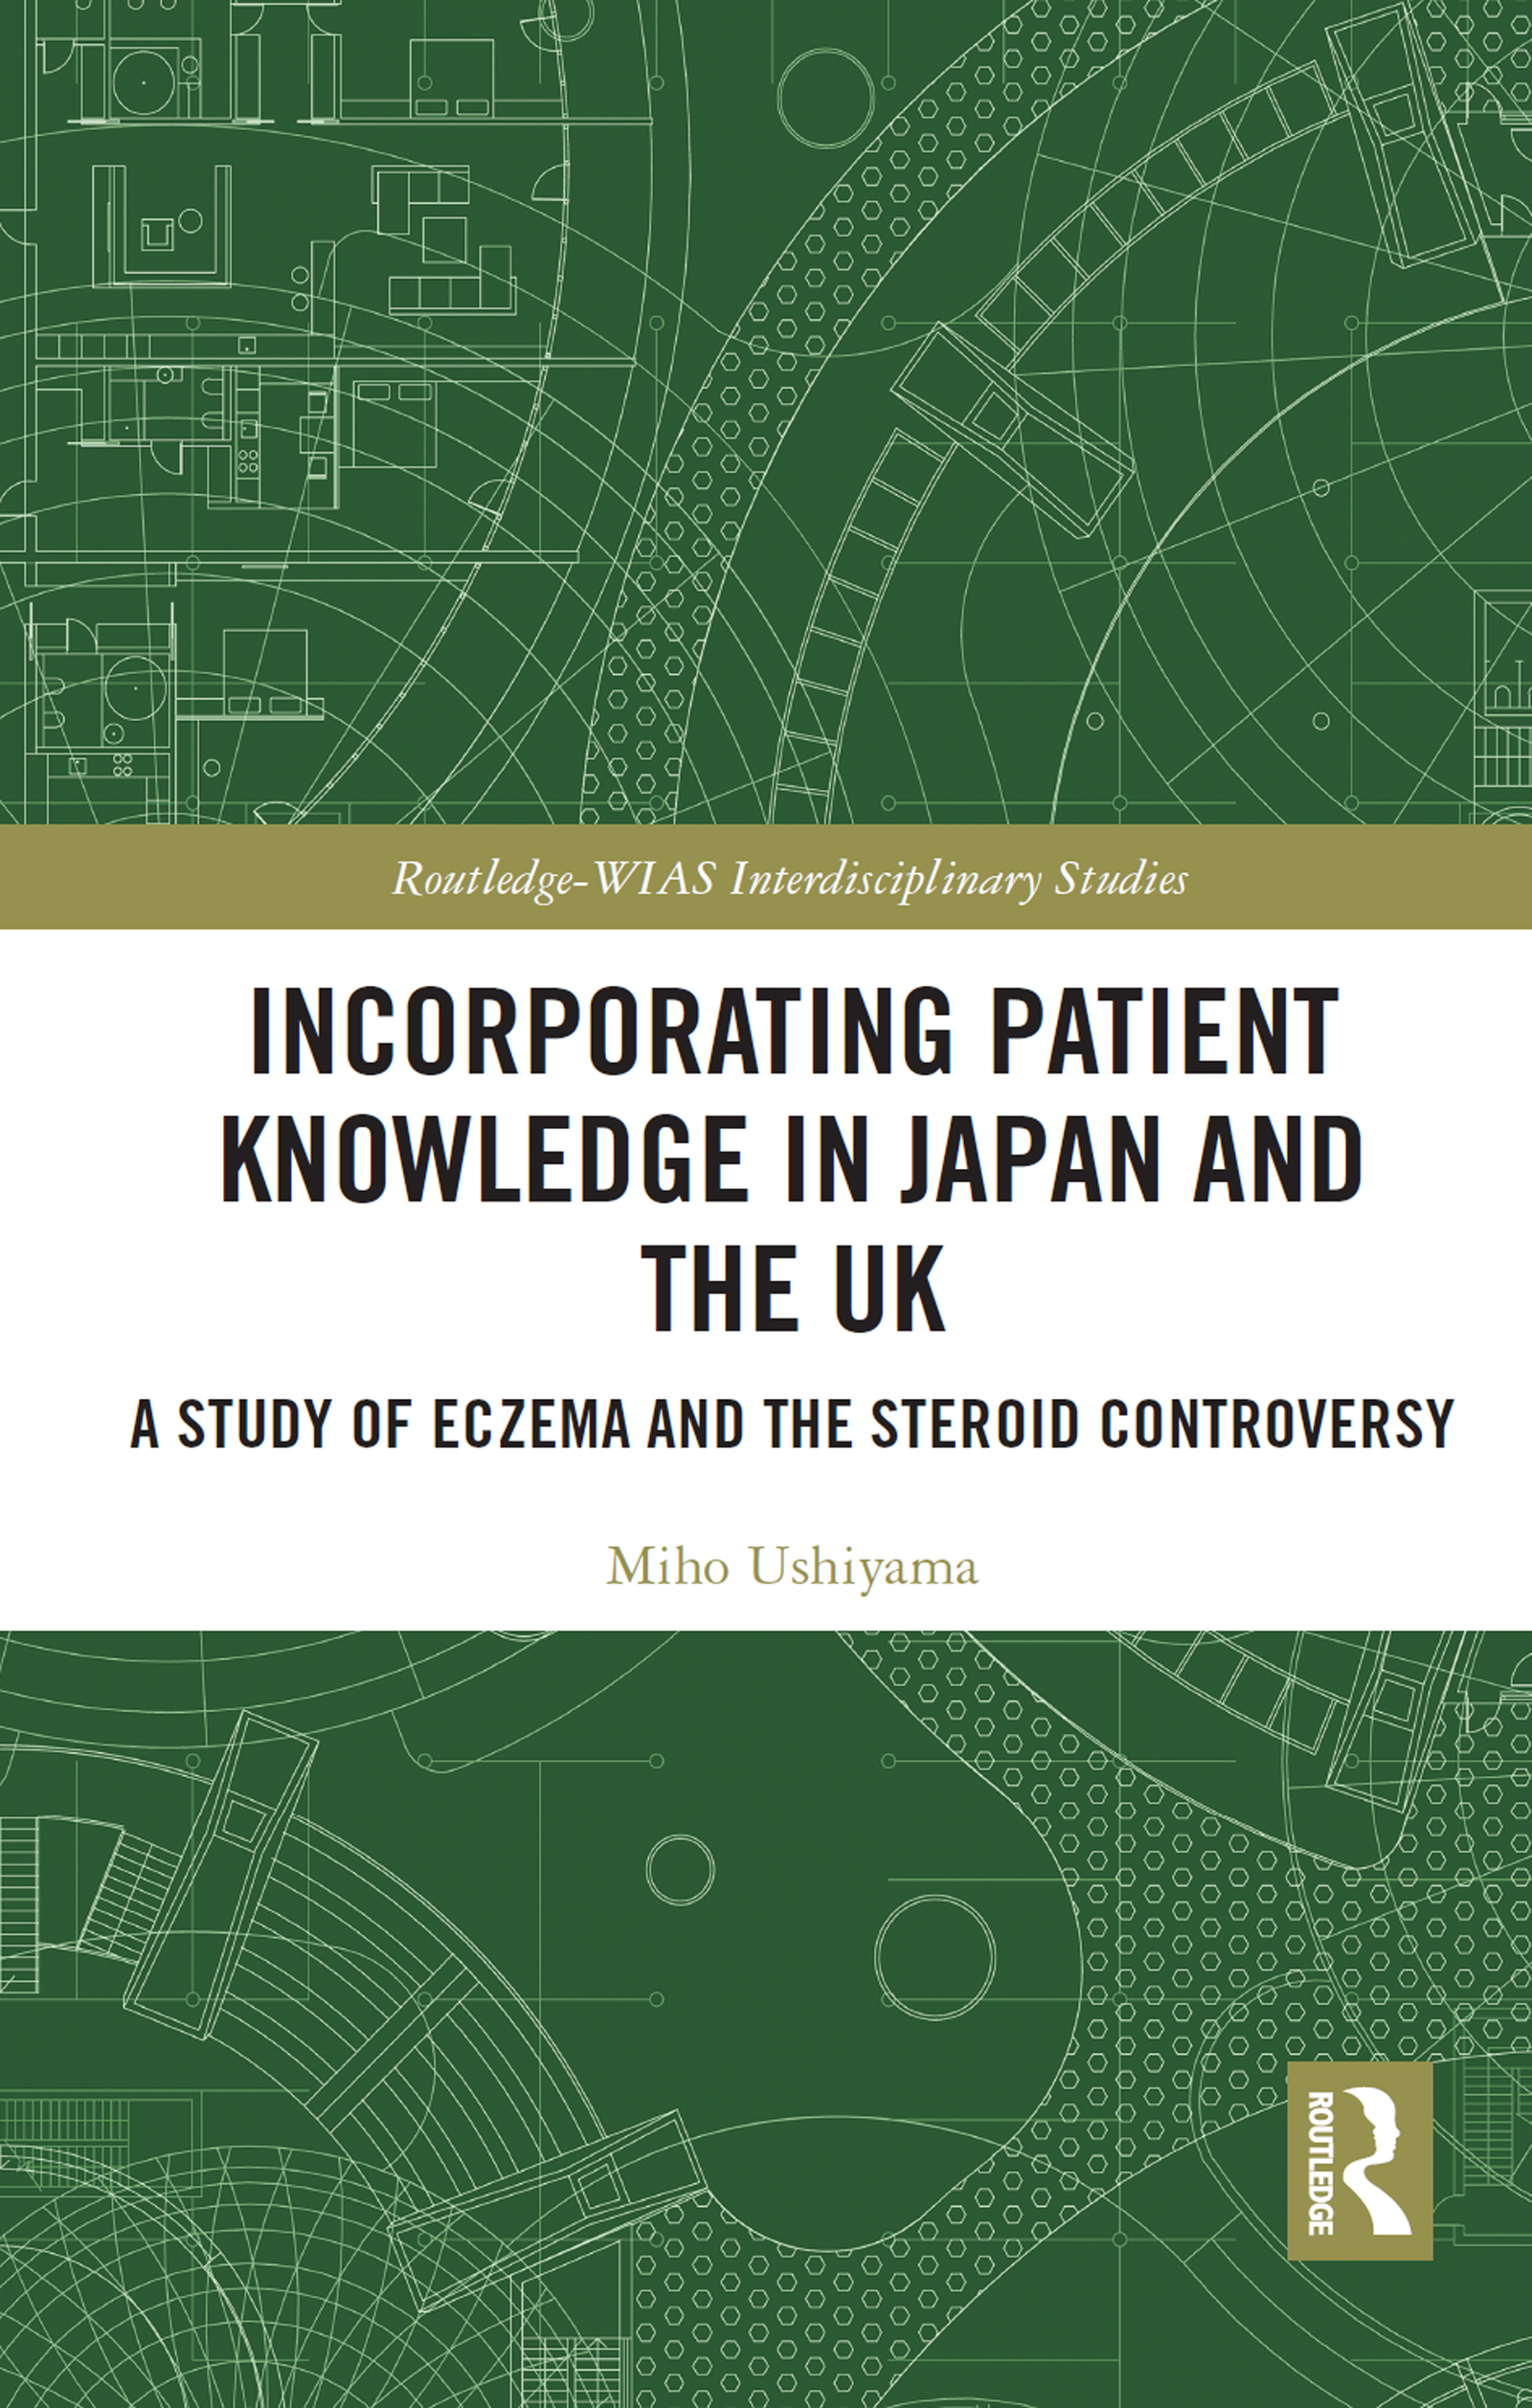 Incorporating Patient Knowledge in Japan and the UK